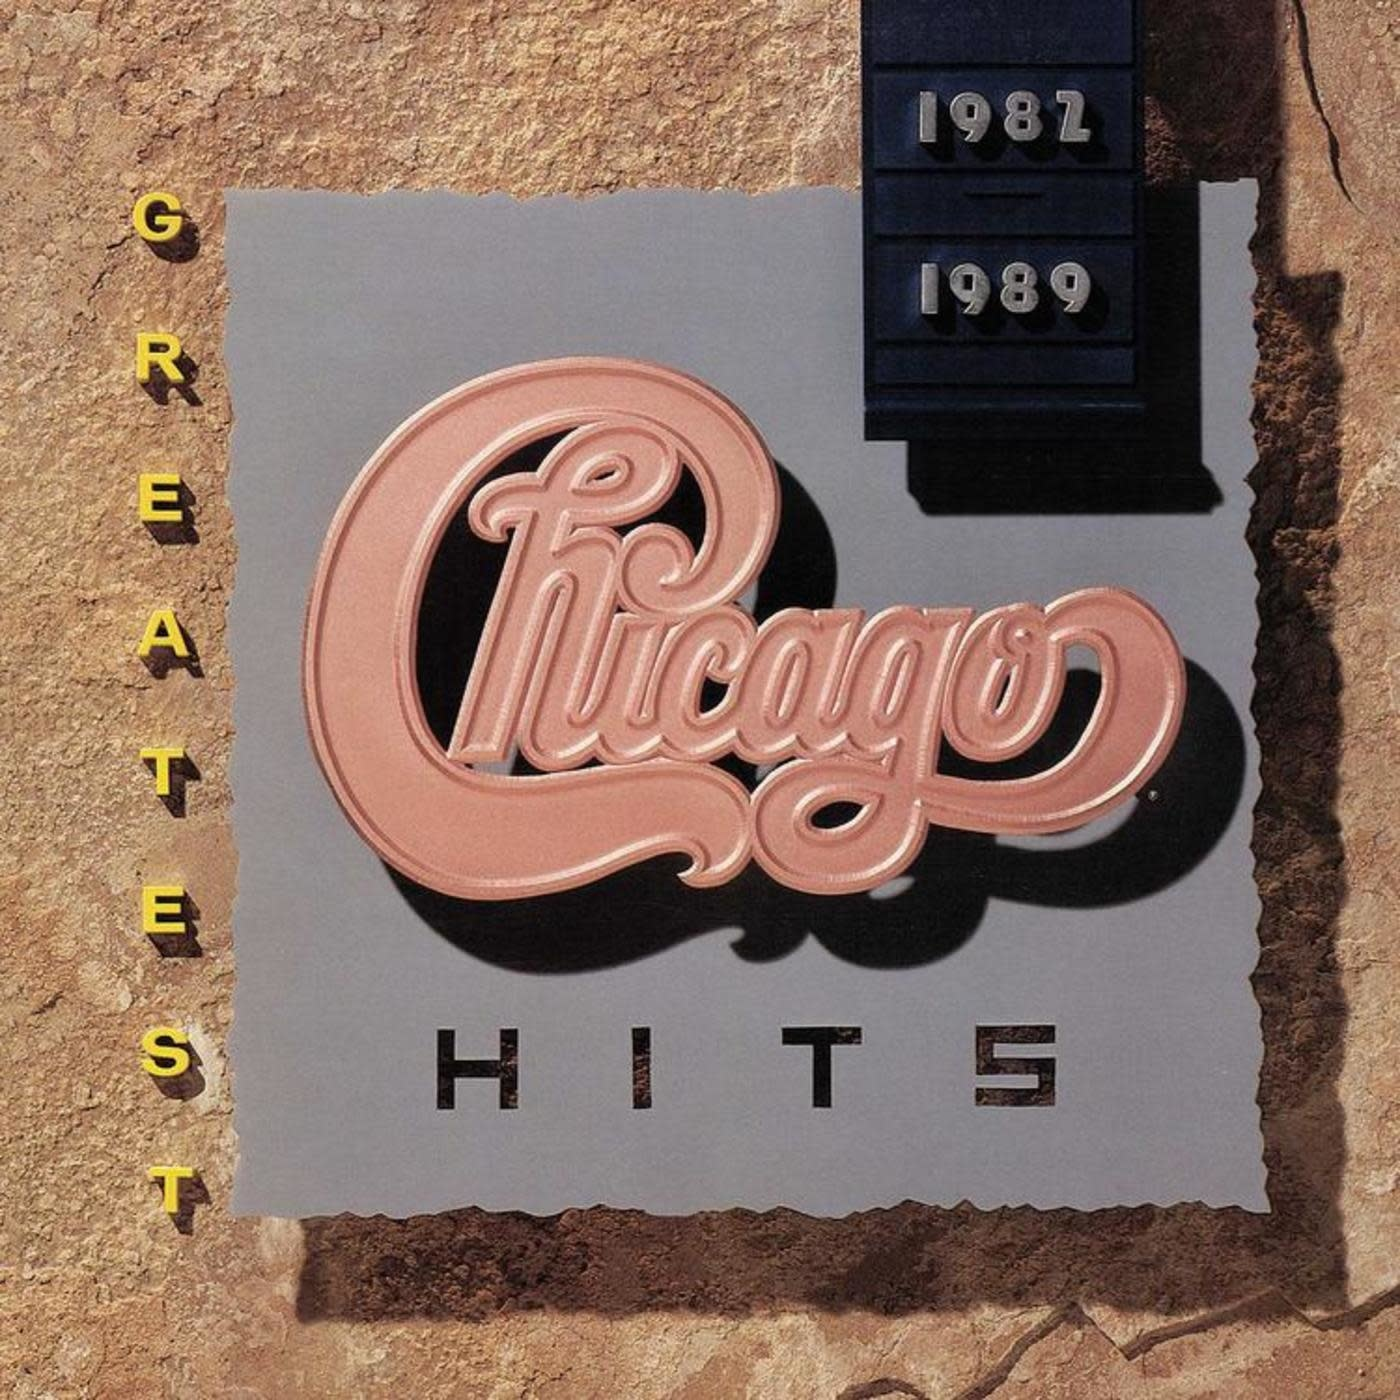 Chicago – Greatest Hits 1982-1989